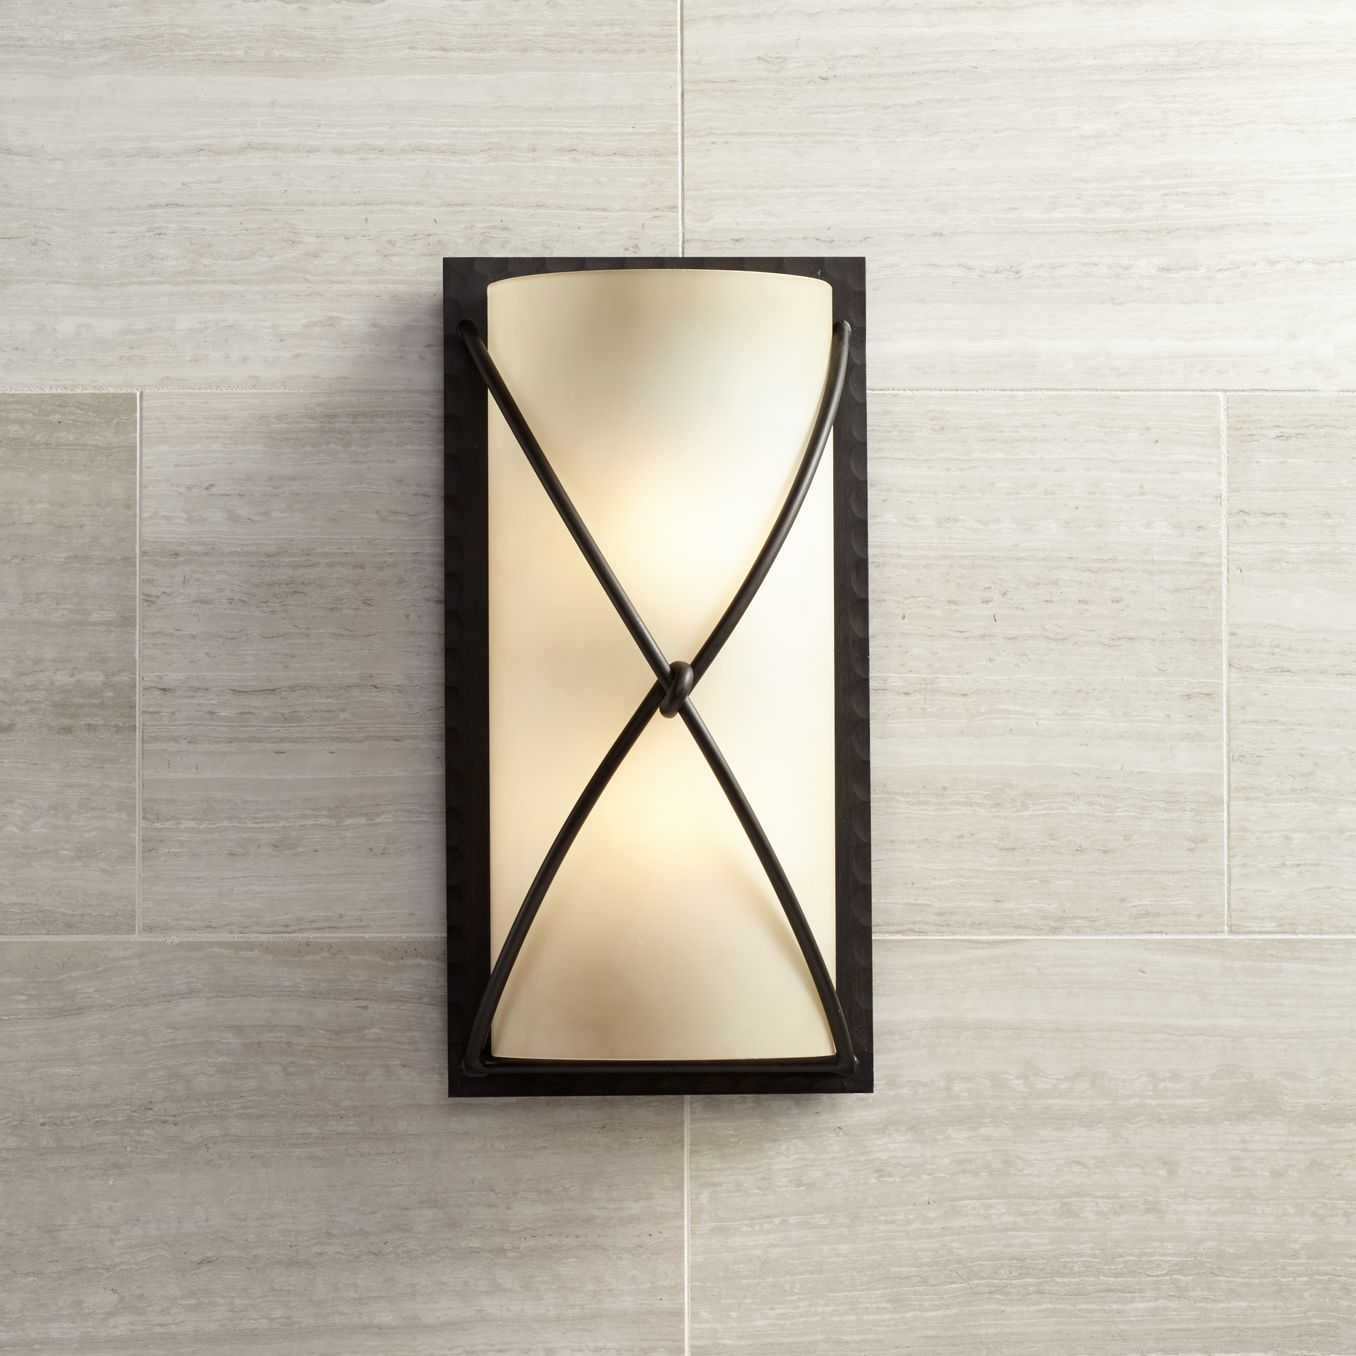 Minka Knotted Iron 18 1/2  High Wall Sconce & Minka Lavery Bathroom Lighting | Lamps Plus azcodes.com